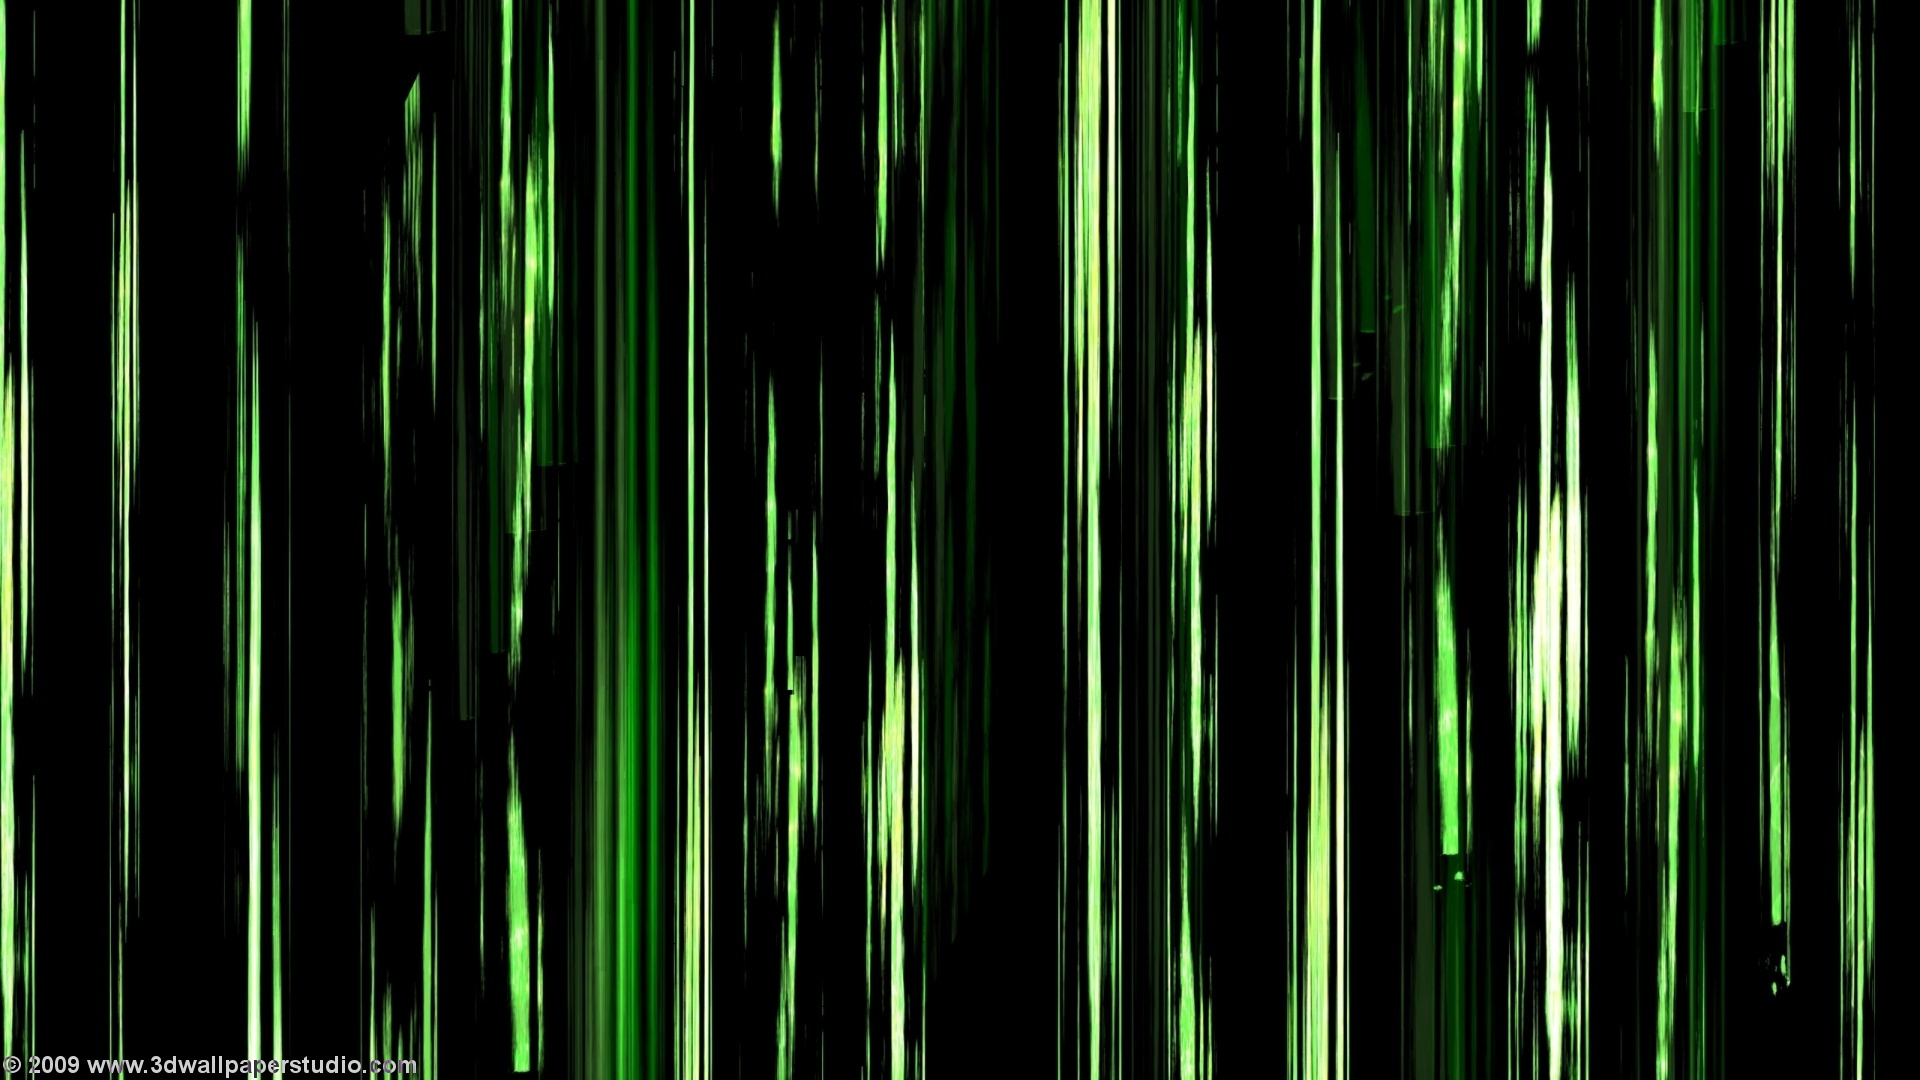 Neon Green and Black Wallpaper - WallpaperSafari